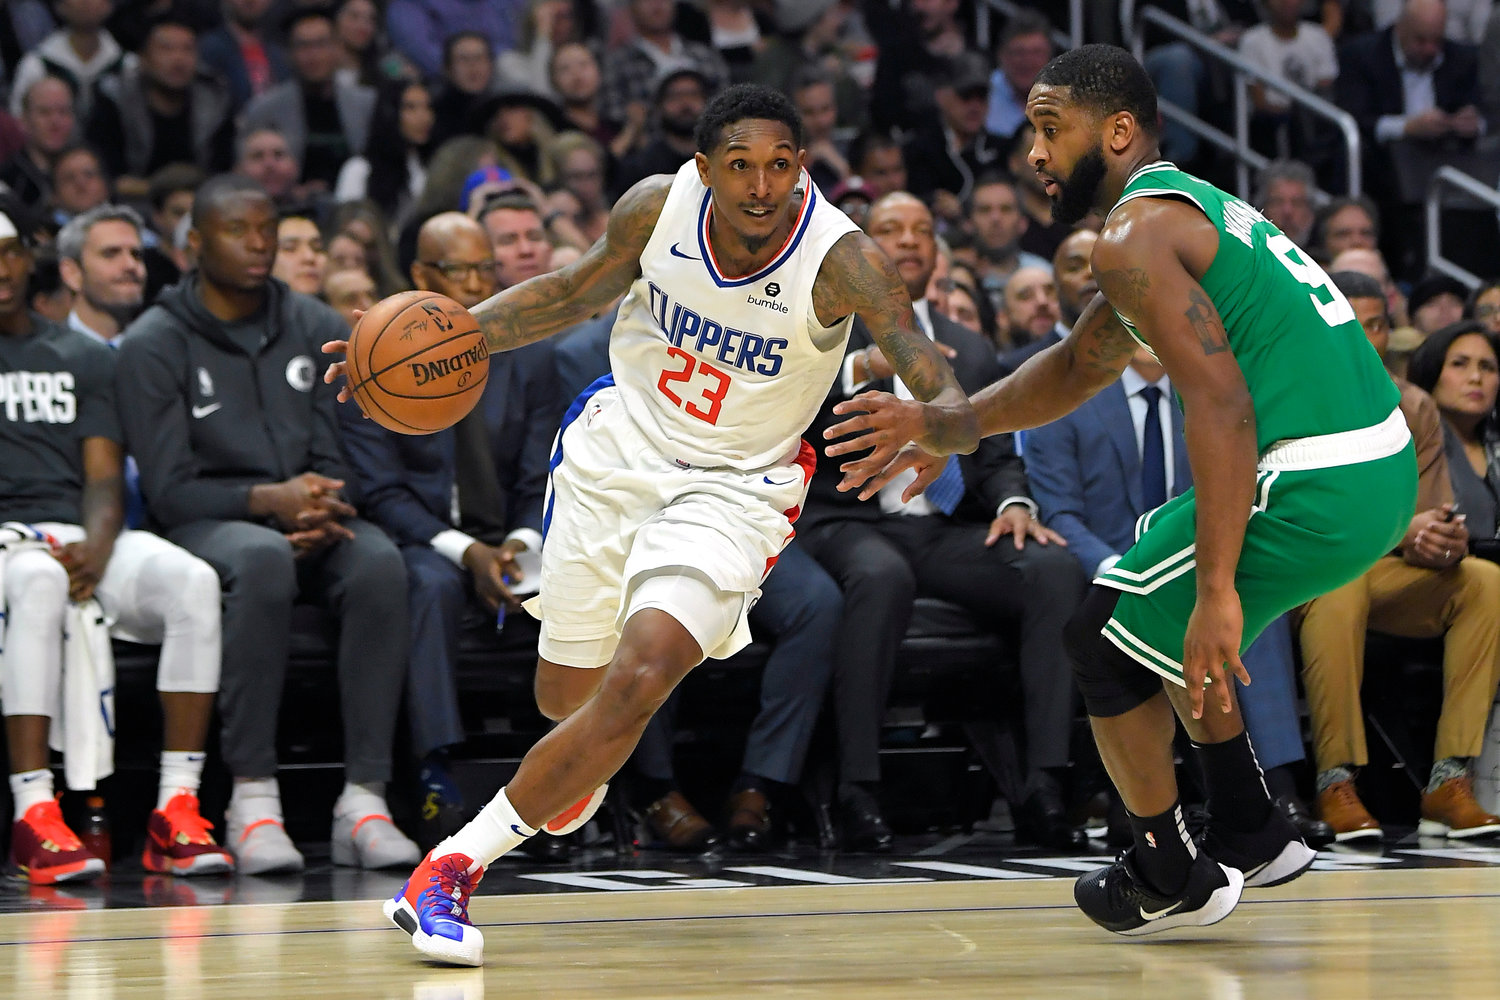 DRIVING BY — Clippers guard Lou Williams, left, drives past Celtics guard Brad Wanamaker during the second half of an NBA game on Wednesday night in Los Angeles. Williams scored 27 points in the Clippers' 107-104 overtime win.